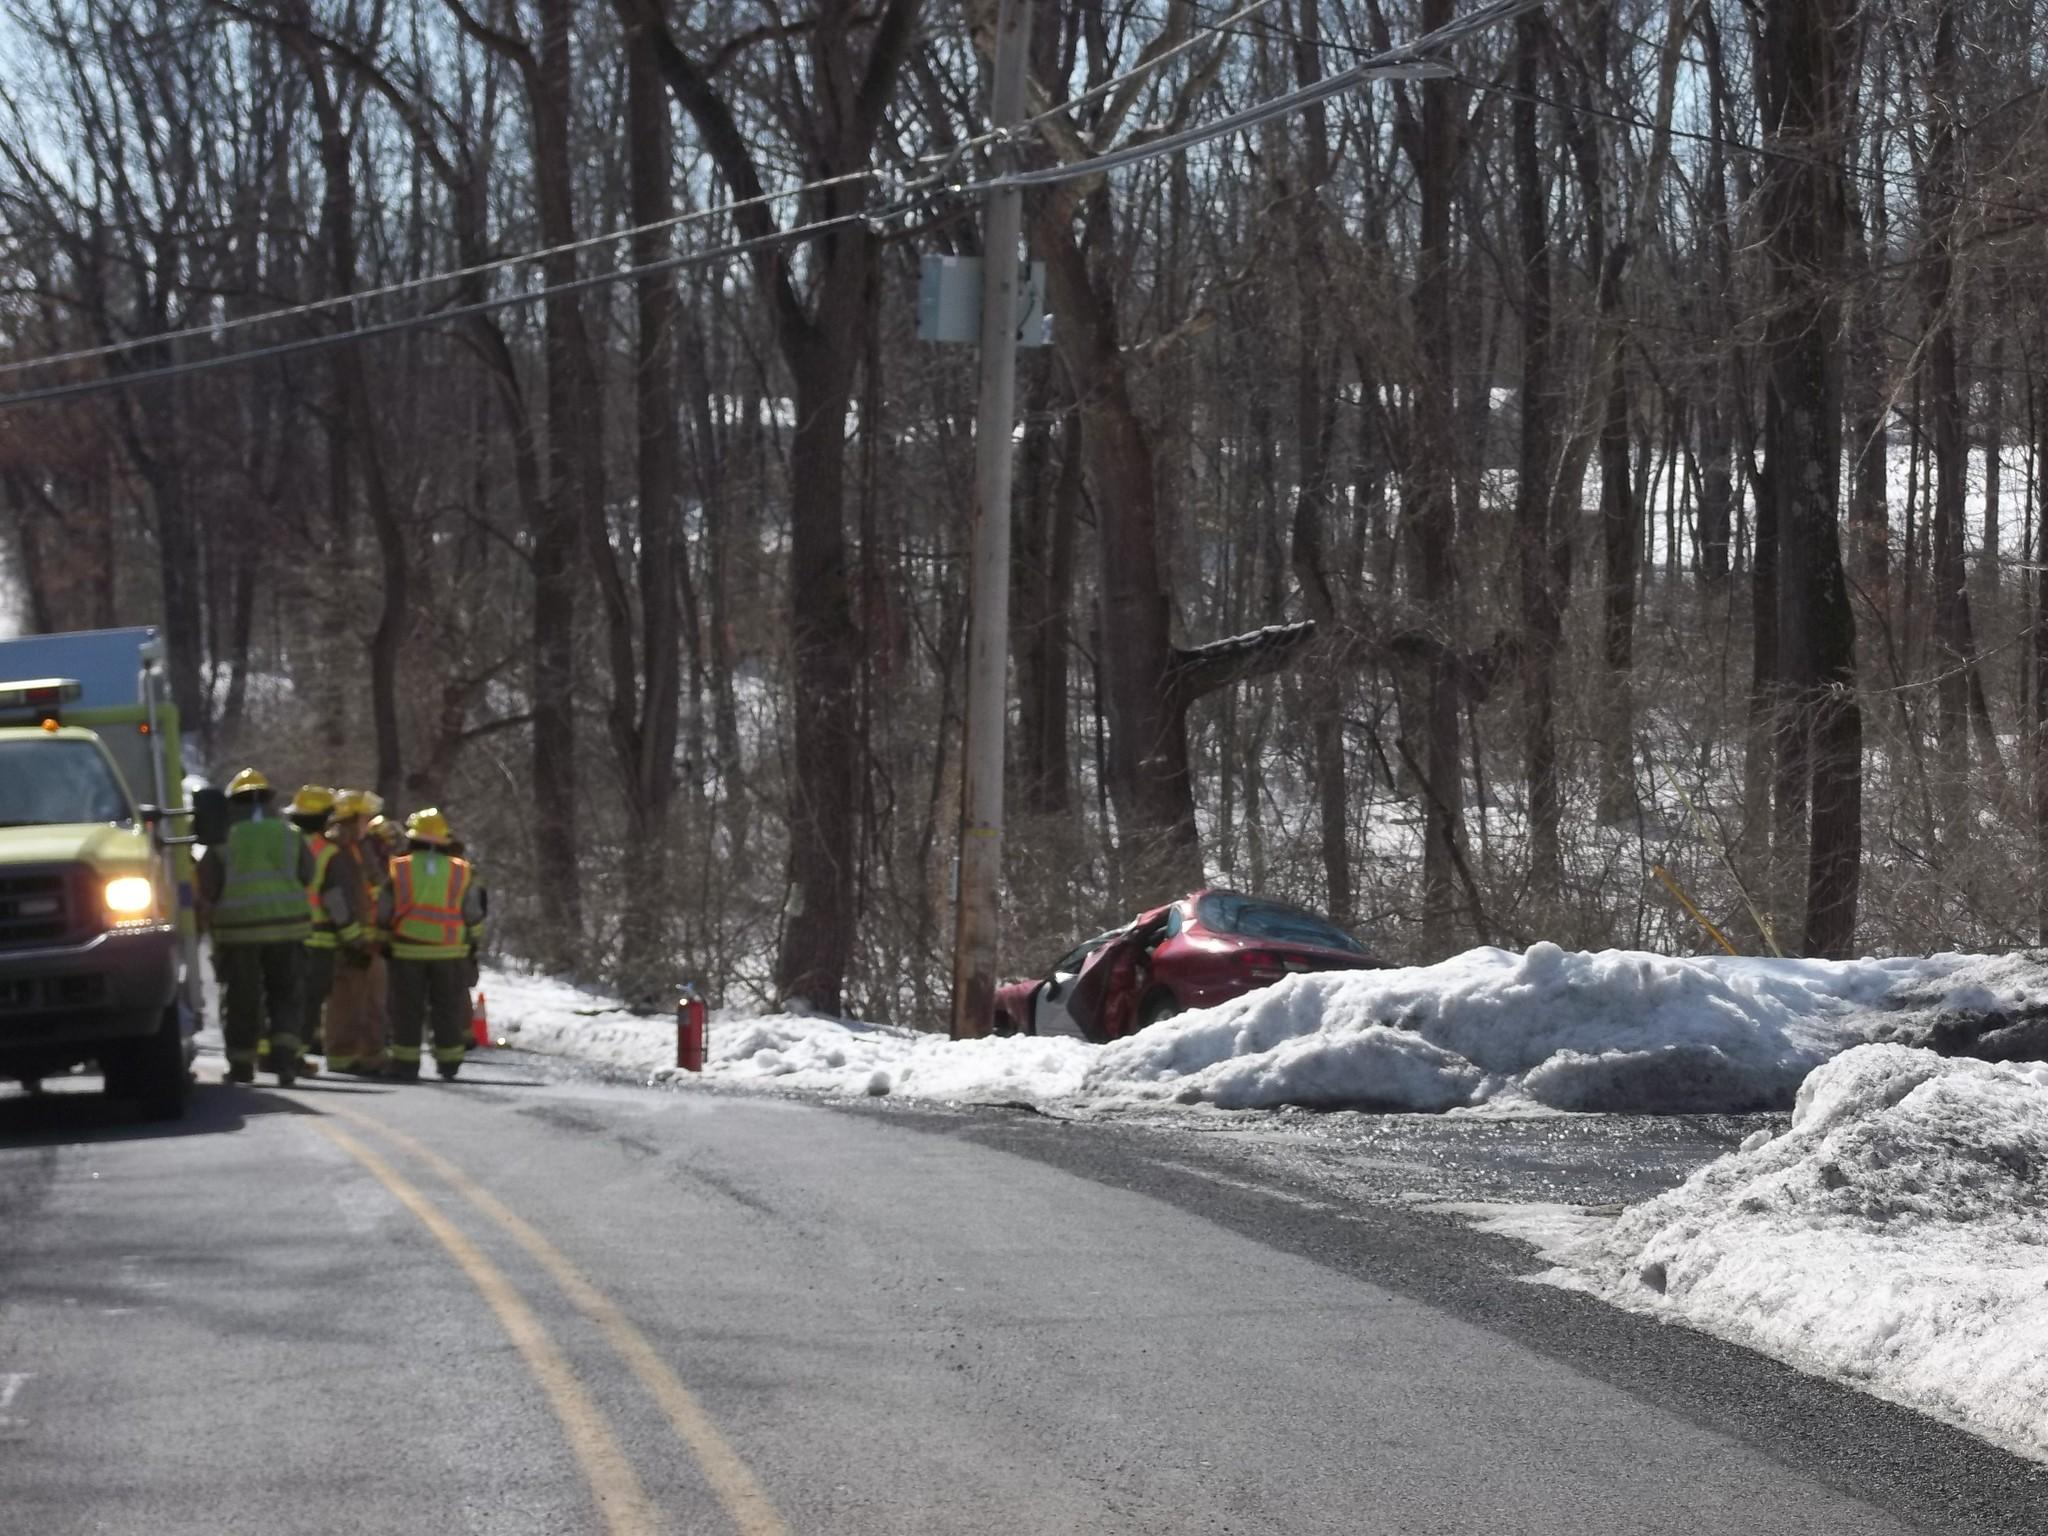 40-year-old Tonia Aman was killed after she lost control of her vehicle and crashed into a utility pole on Rutt Road in Washington Township on Saturday afternoon, police said.